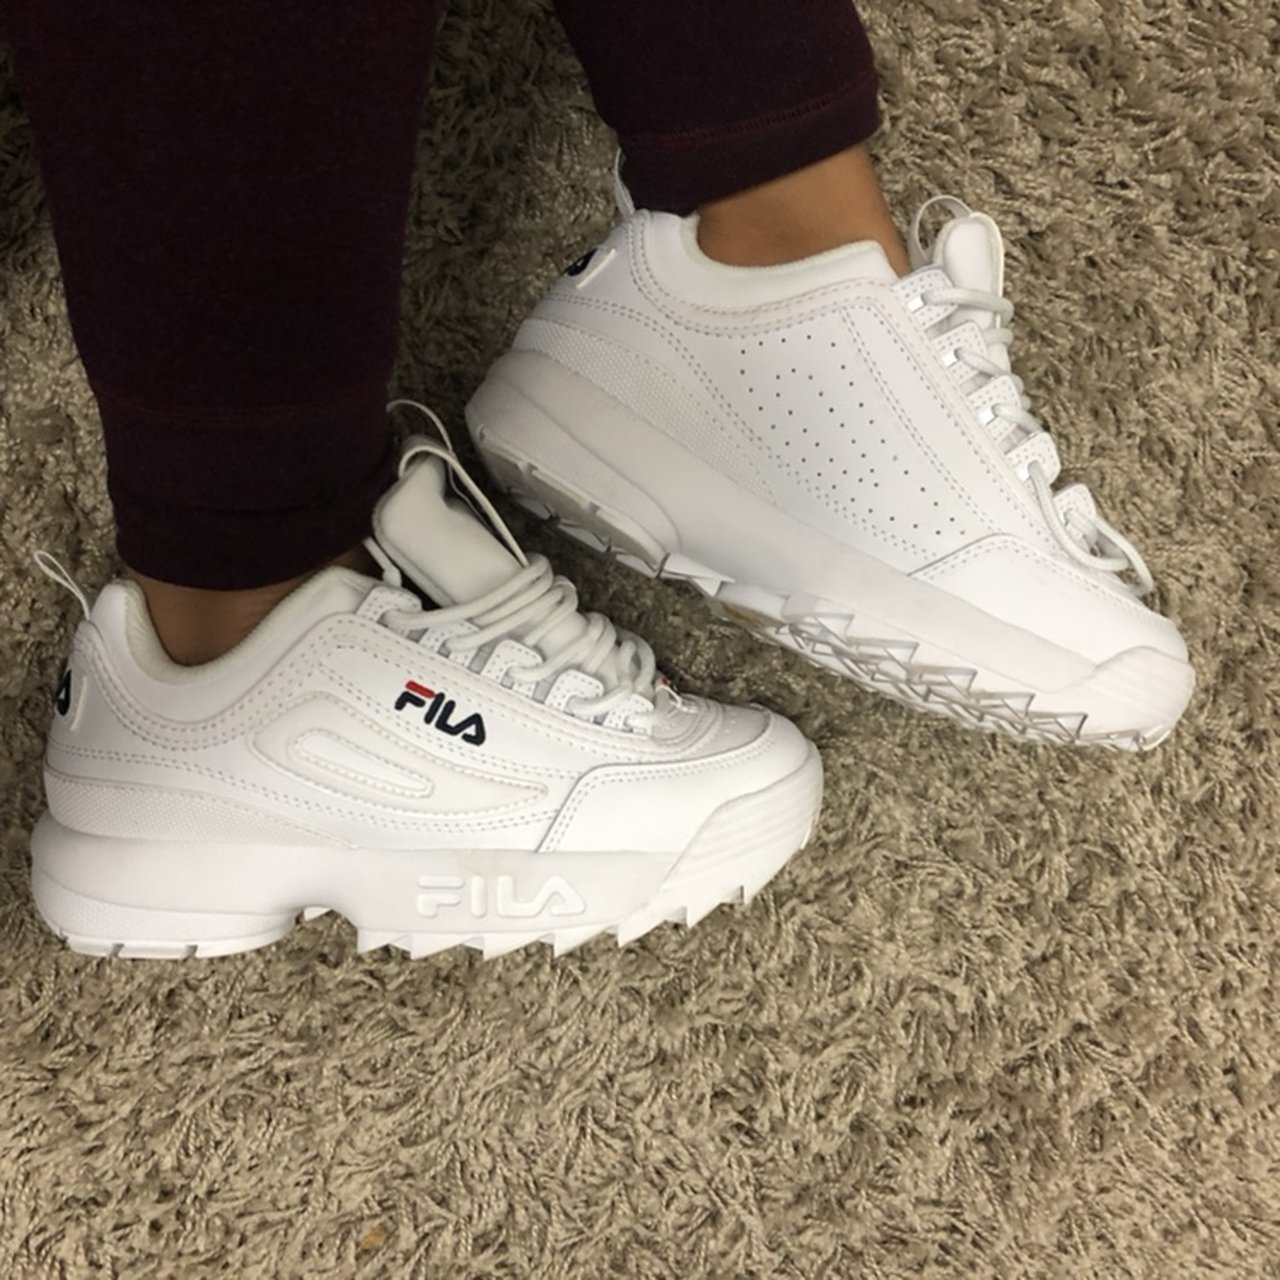 Fila Disruptor II Only worn once bc